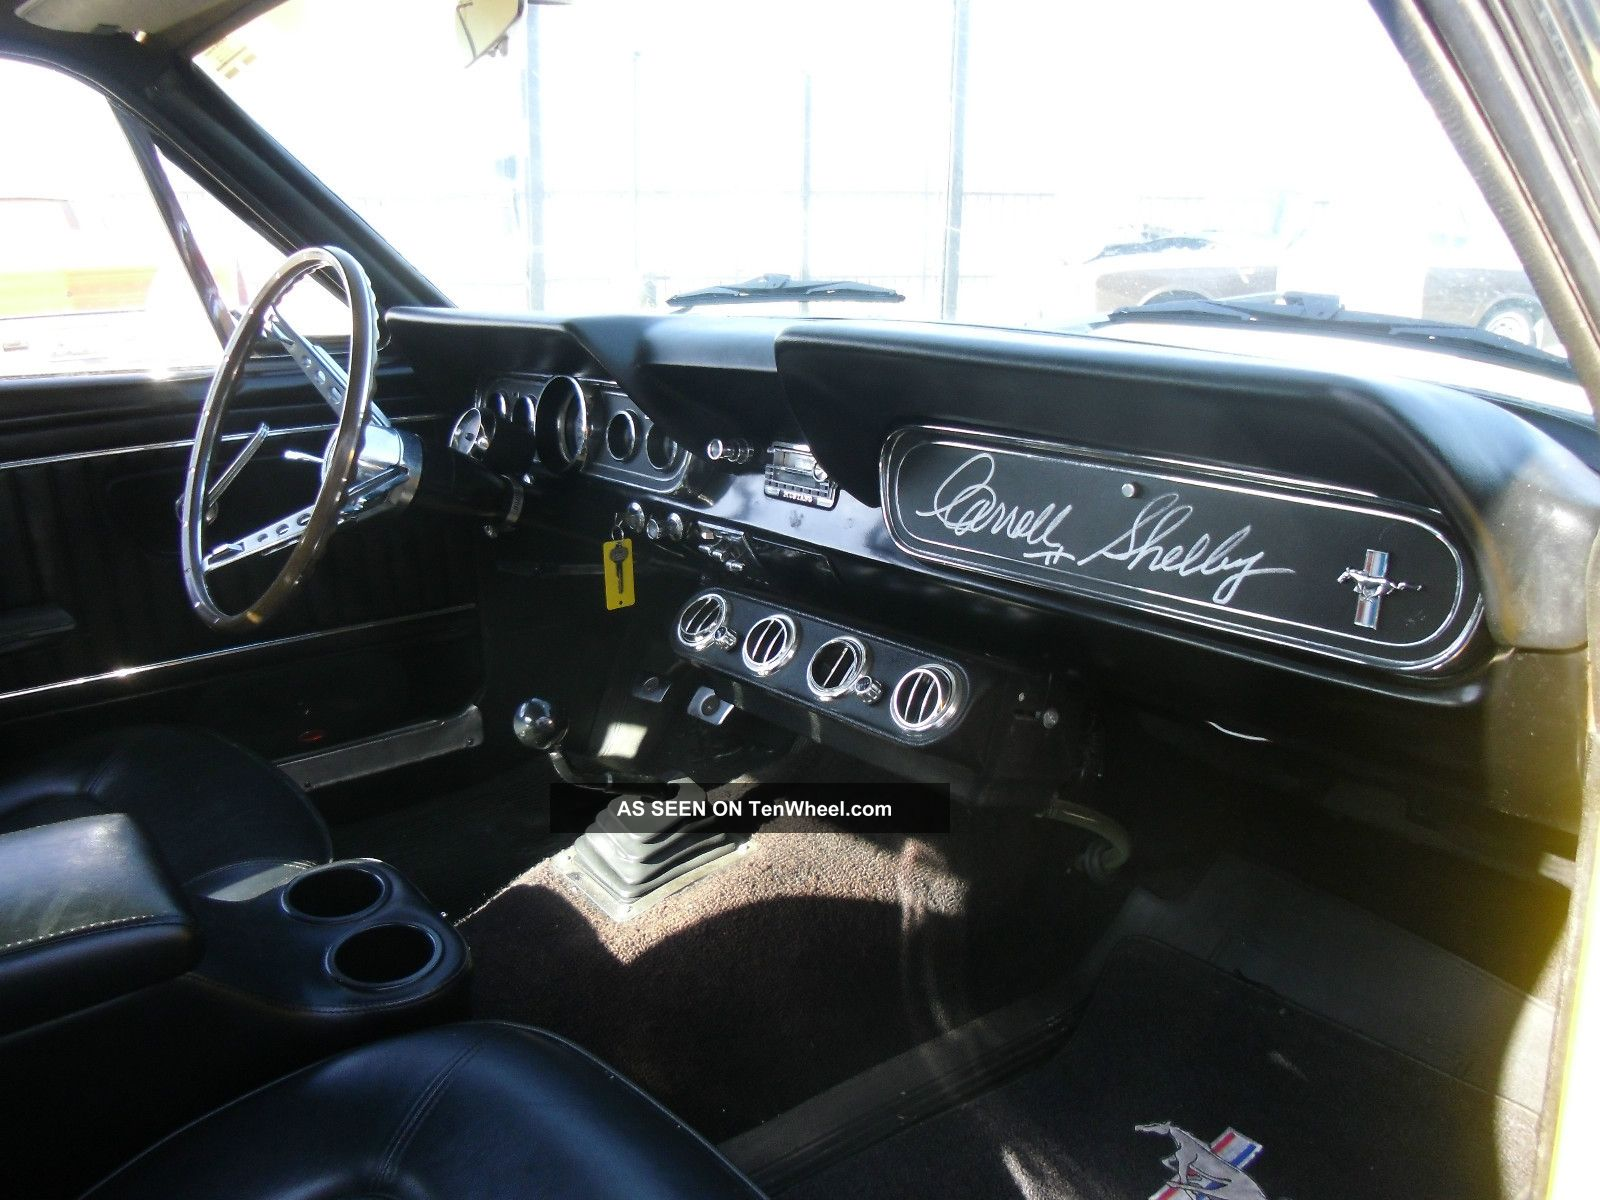 1966 Ford Mustang Fastback 350 Gt Tribute - A Code V8, Manual - C. Shelby  Signed @